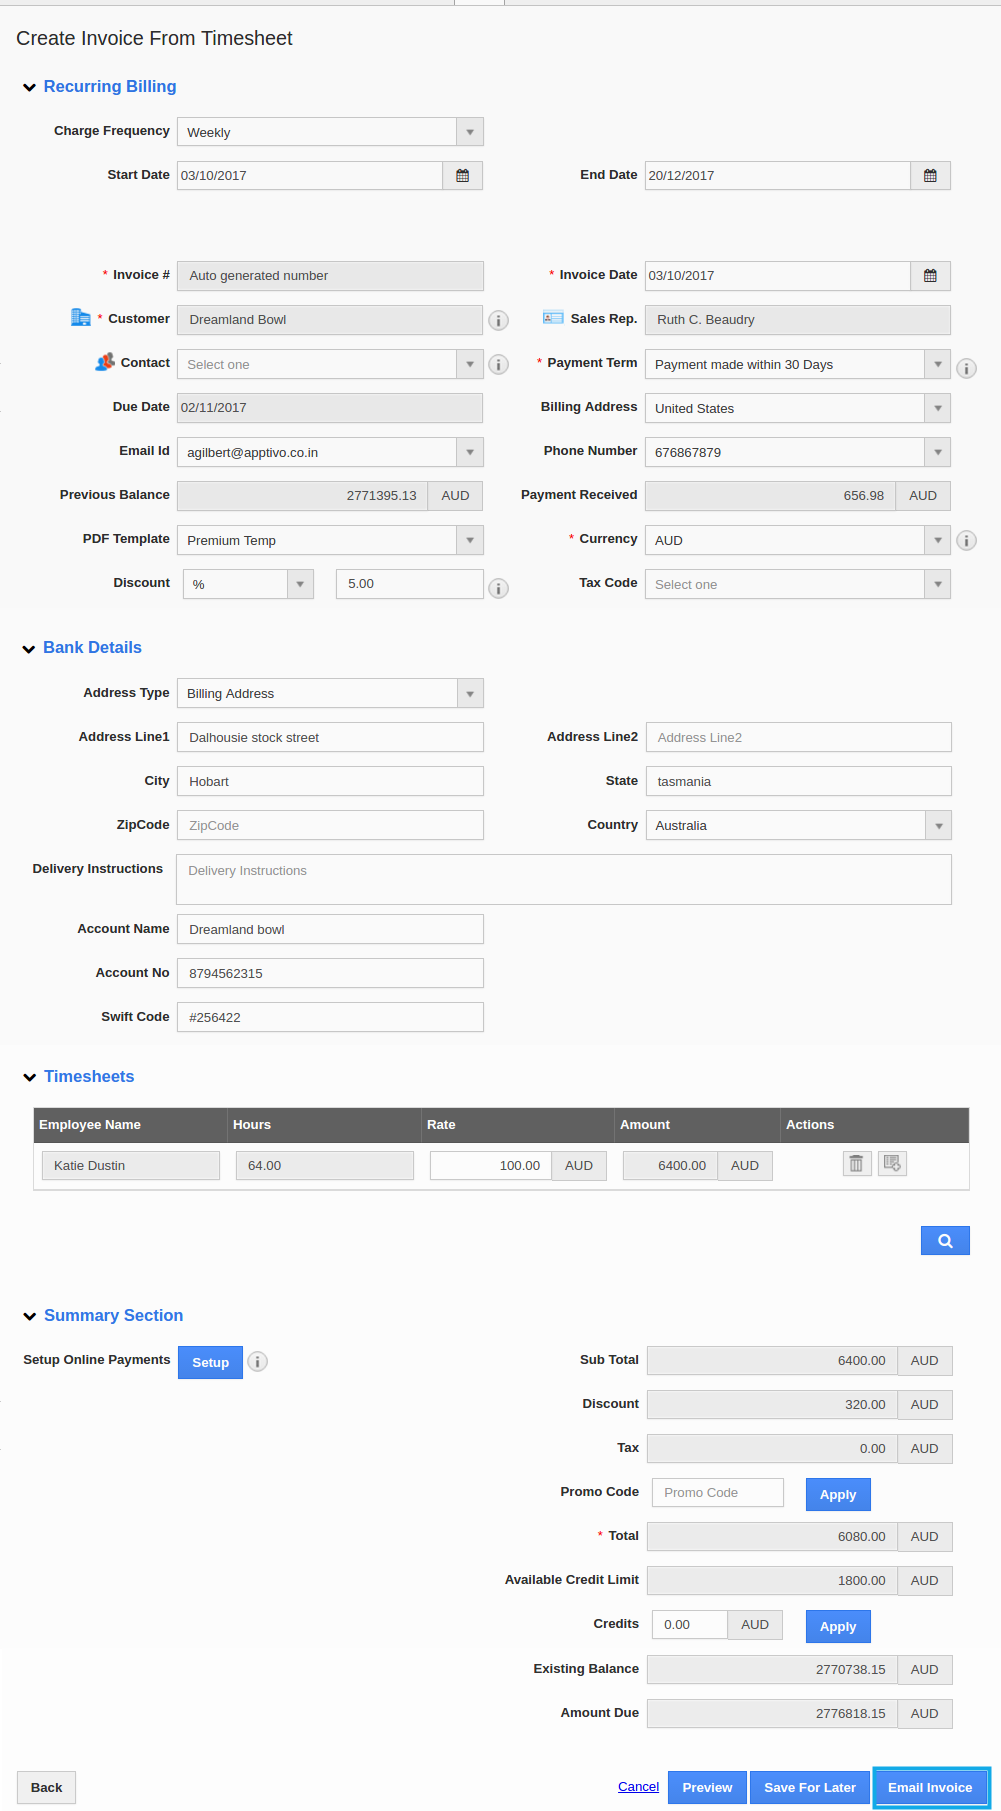 create invoice from timesheet